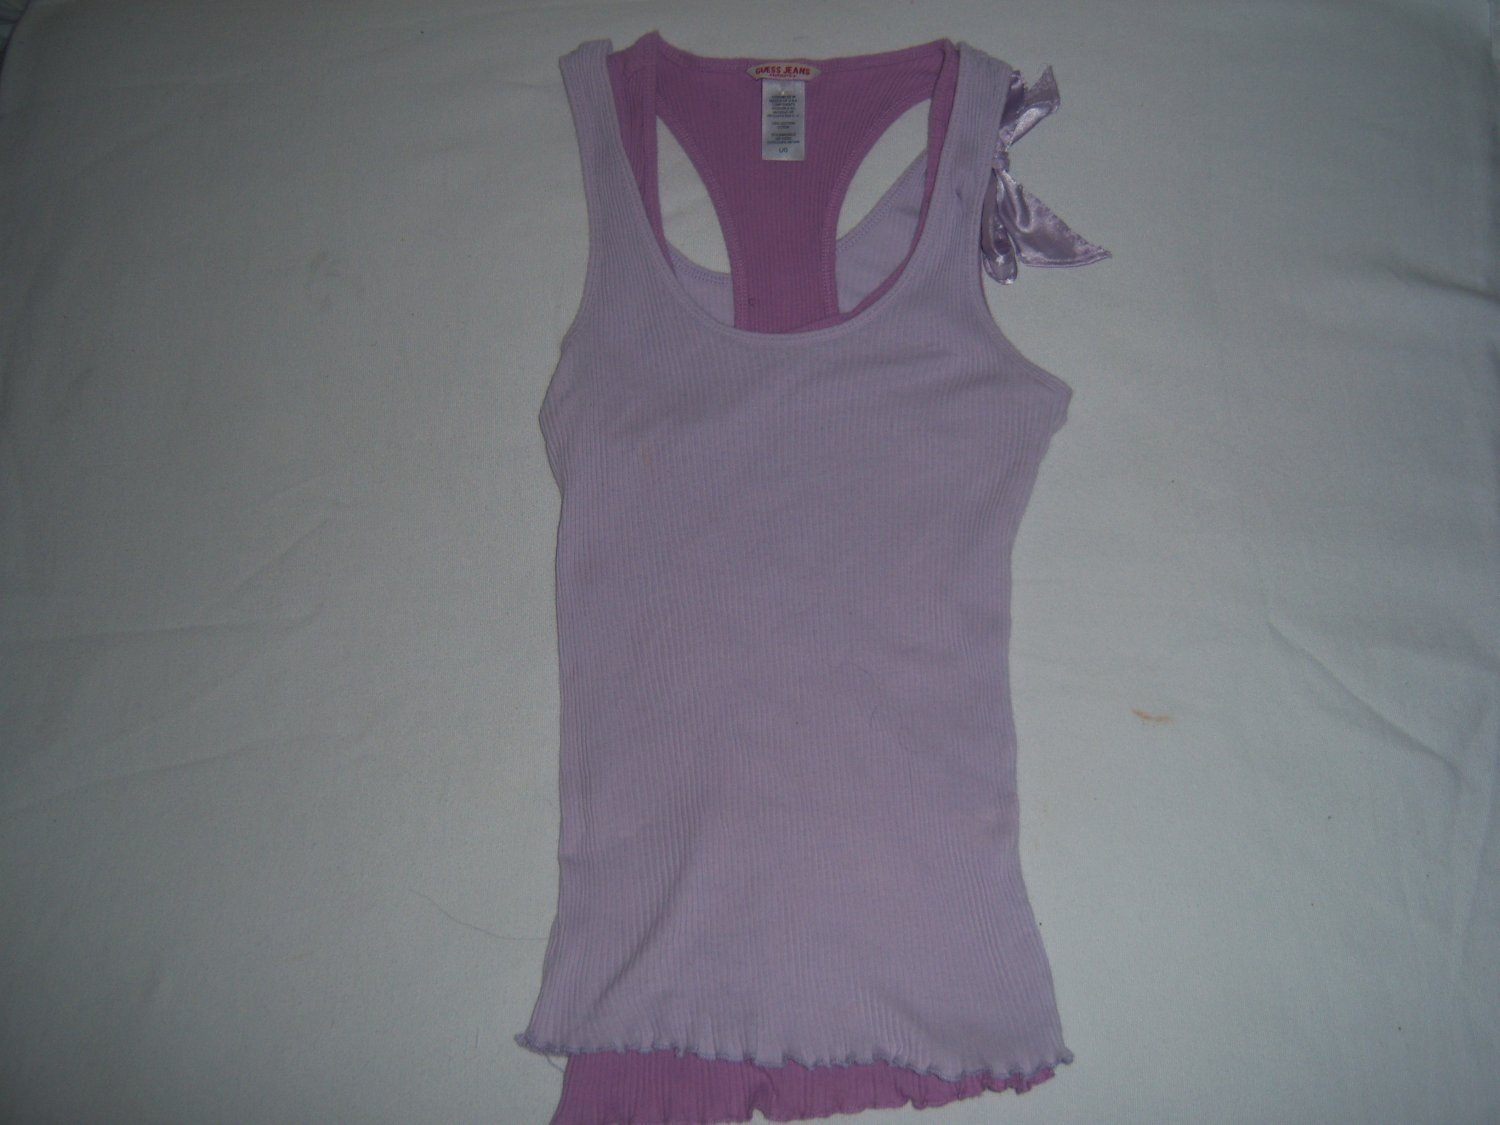 Guess Women's Junior's Purple Tank Top Size Large